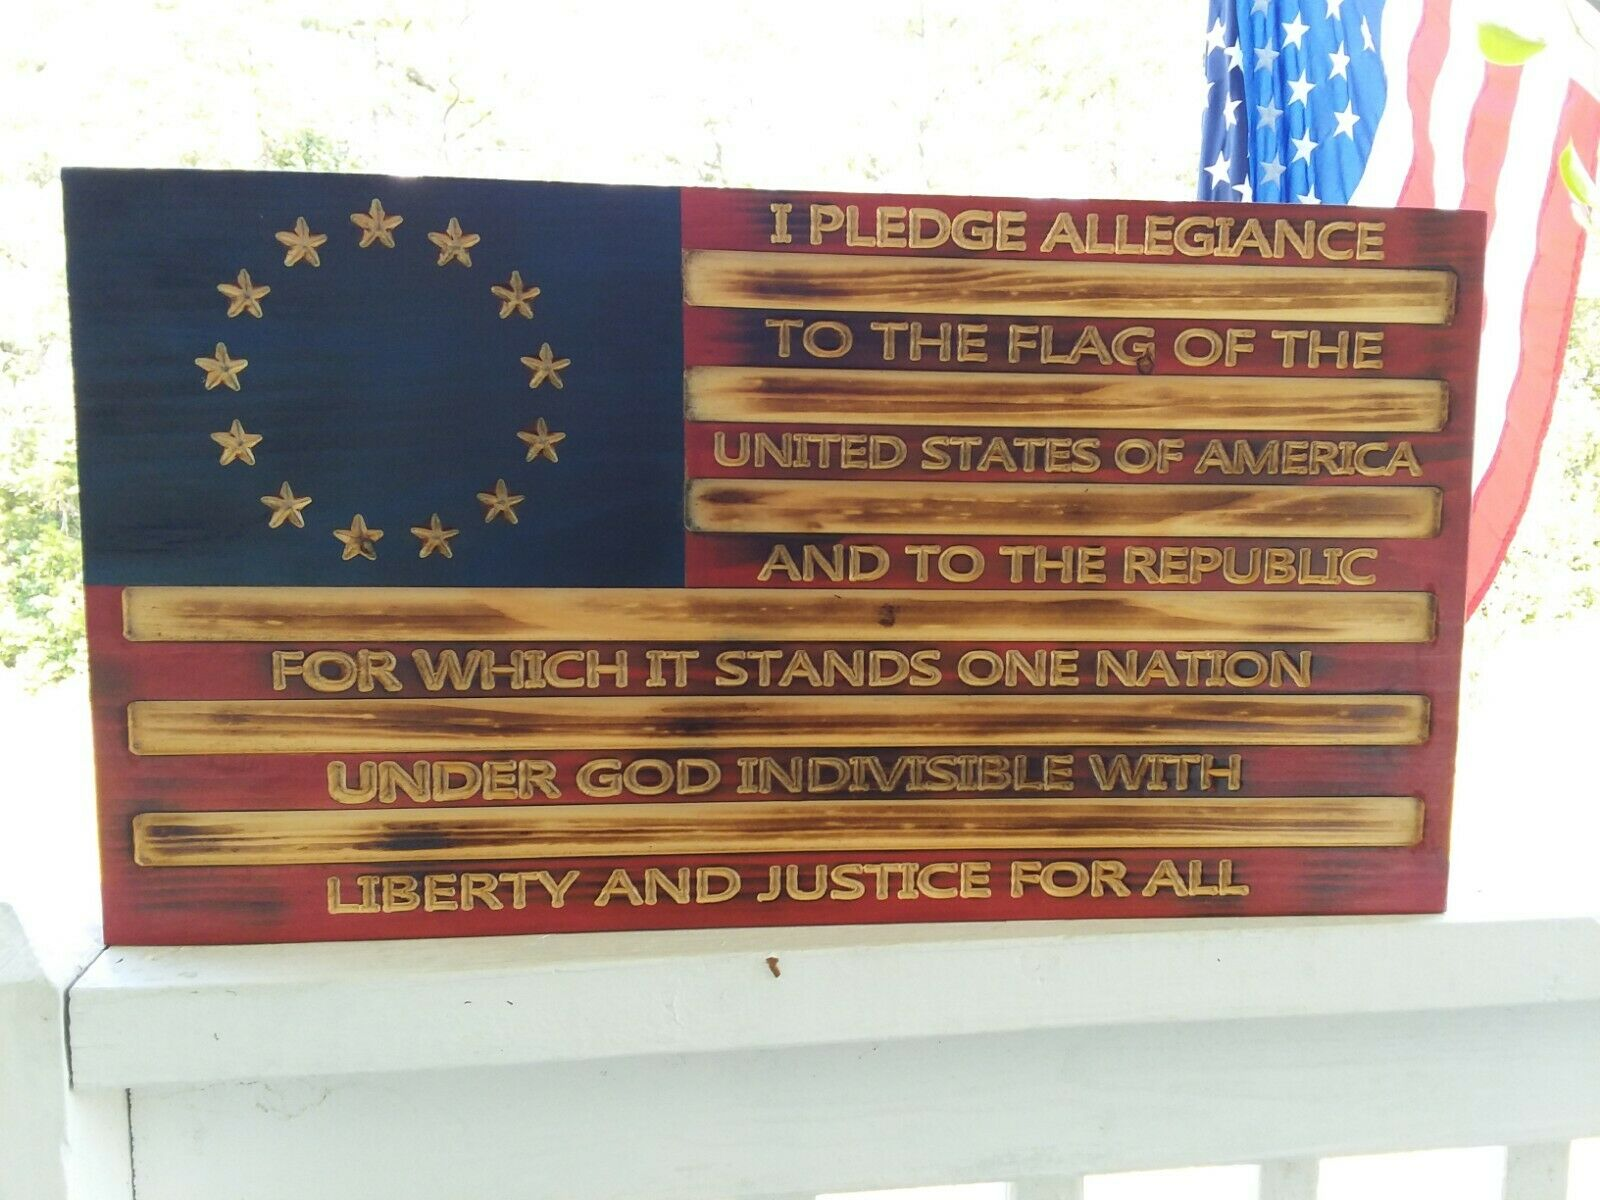 Rustic Wood Distressed Engraved American Flag 21  x 11.25  Pledge of Allegiance